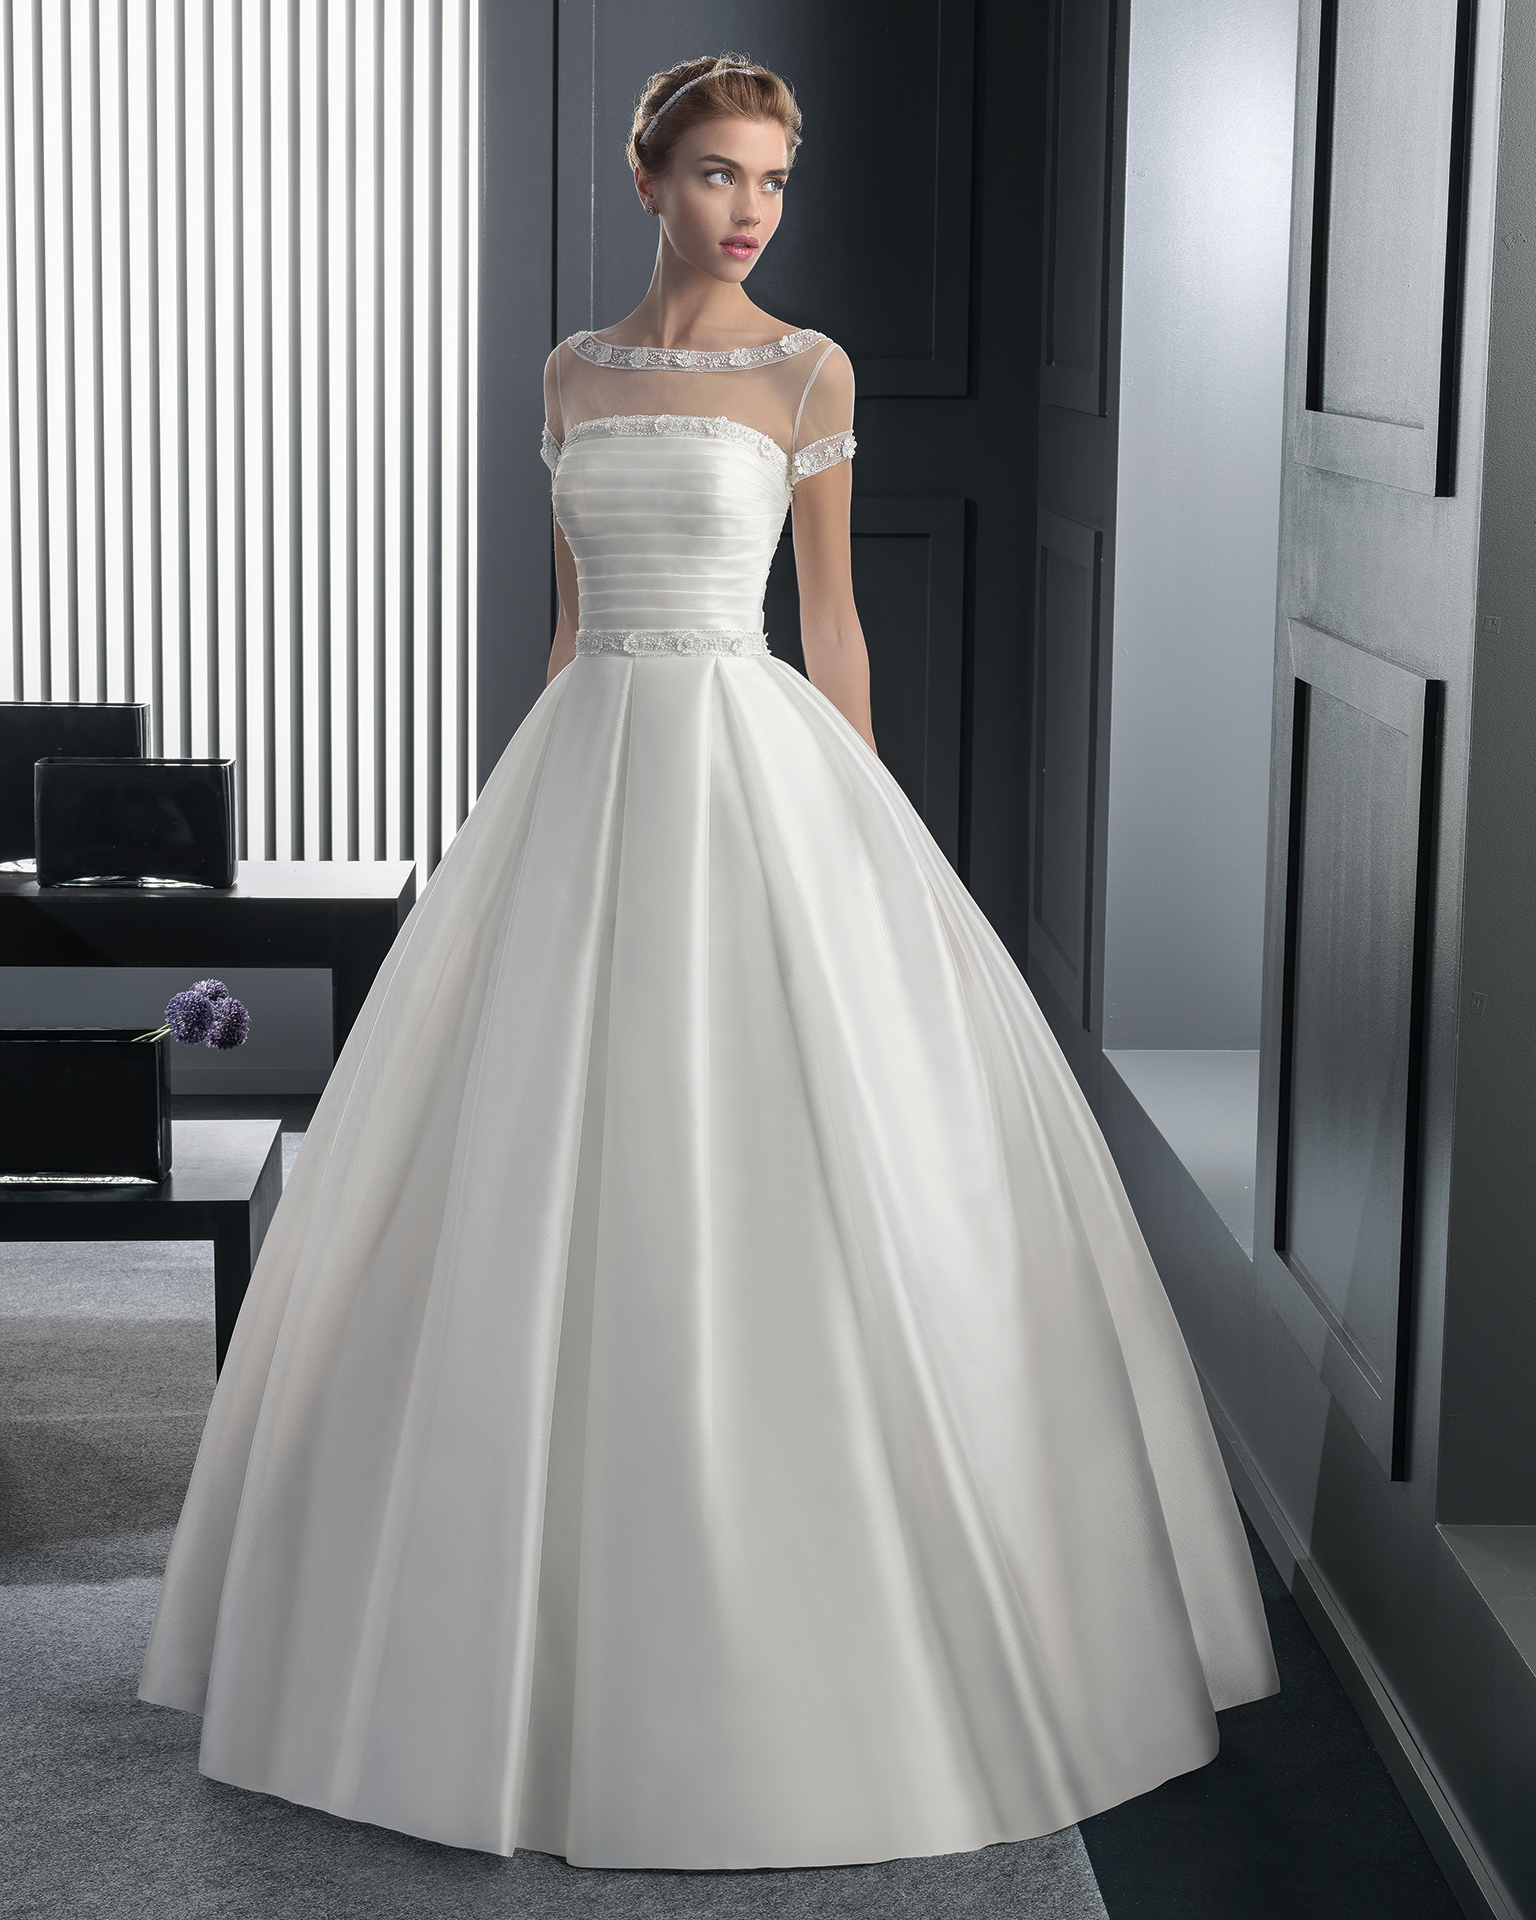 Wedding Gowns For 2015: Two By Rosa Clara Wedding Dresses 2015 Collection